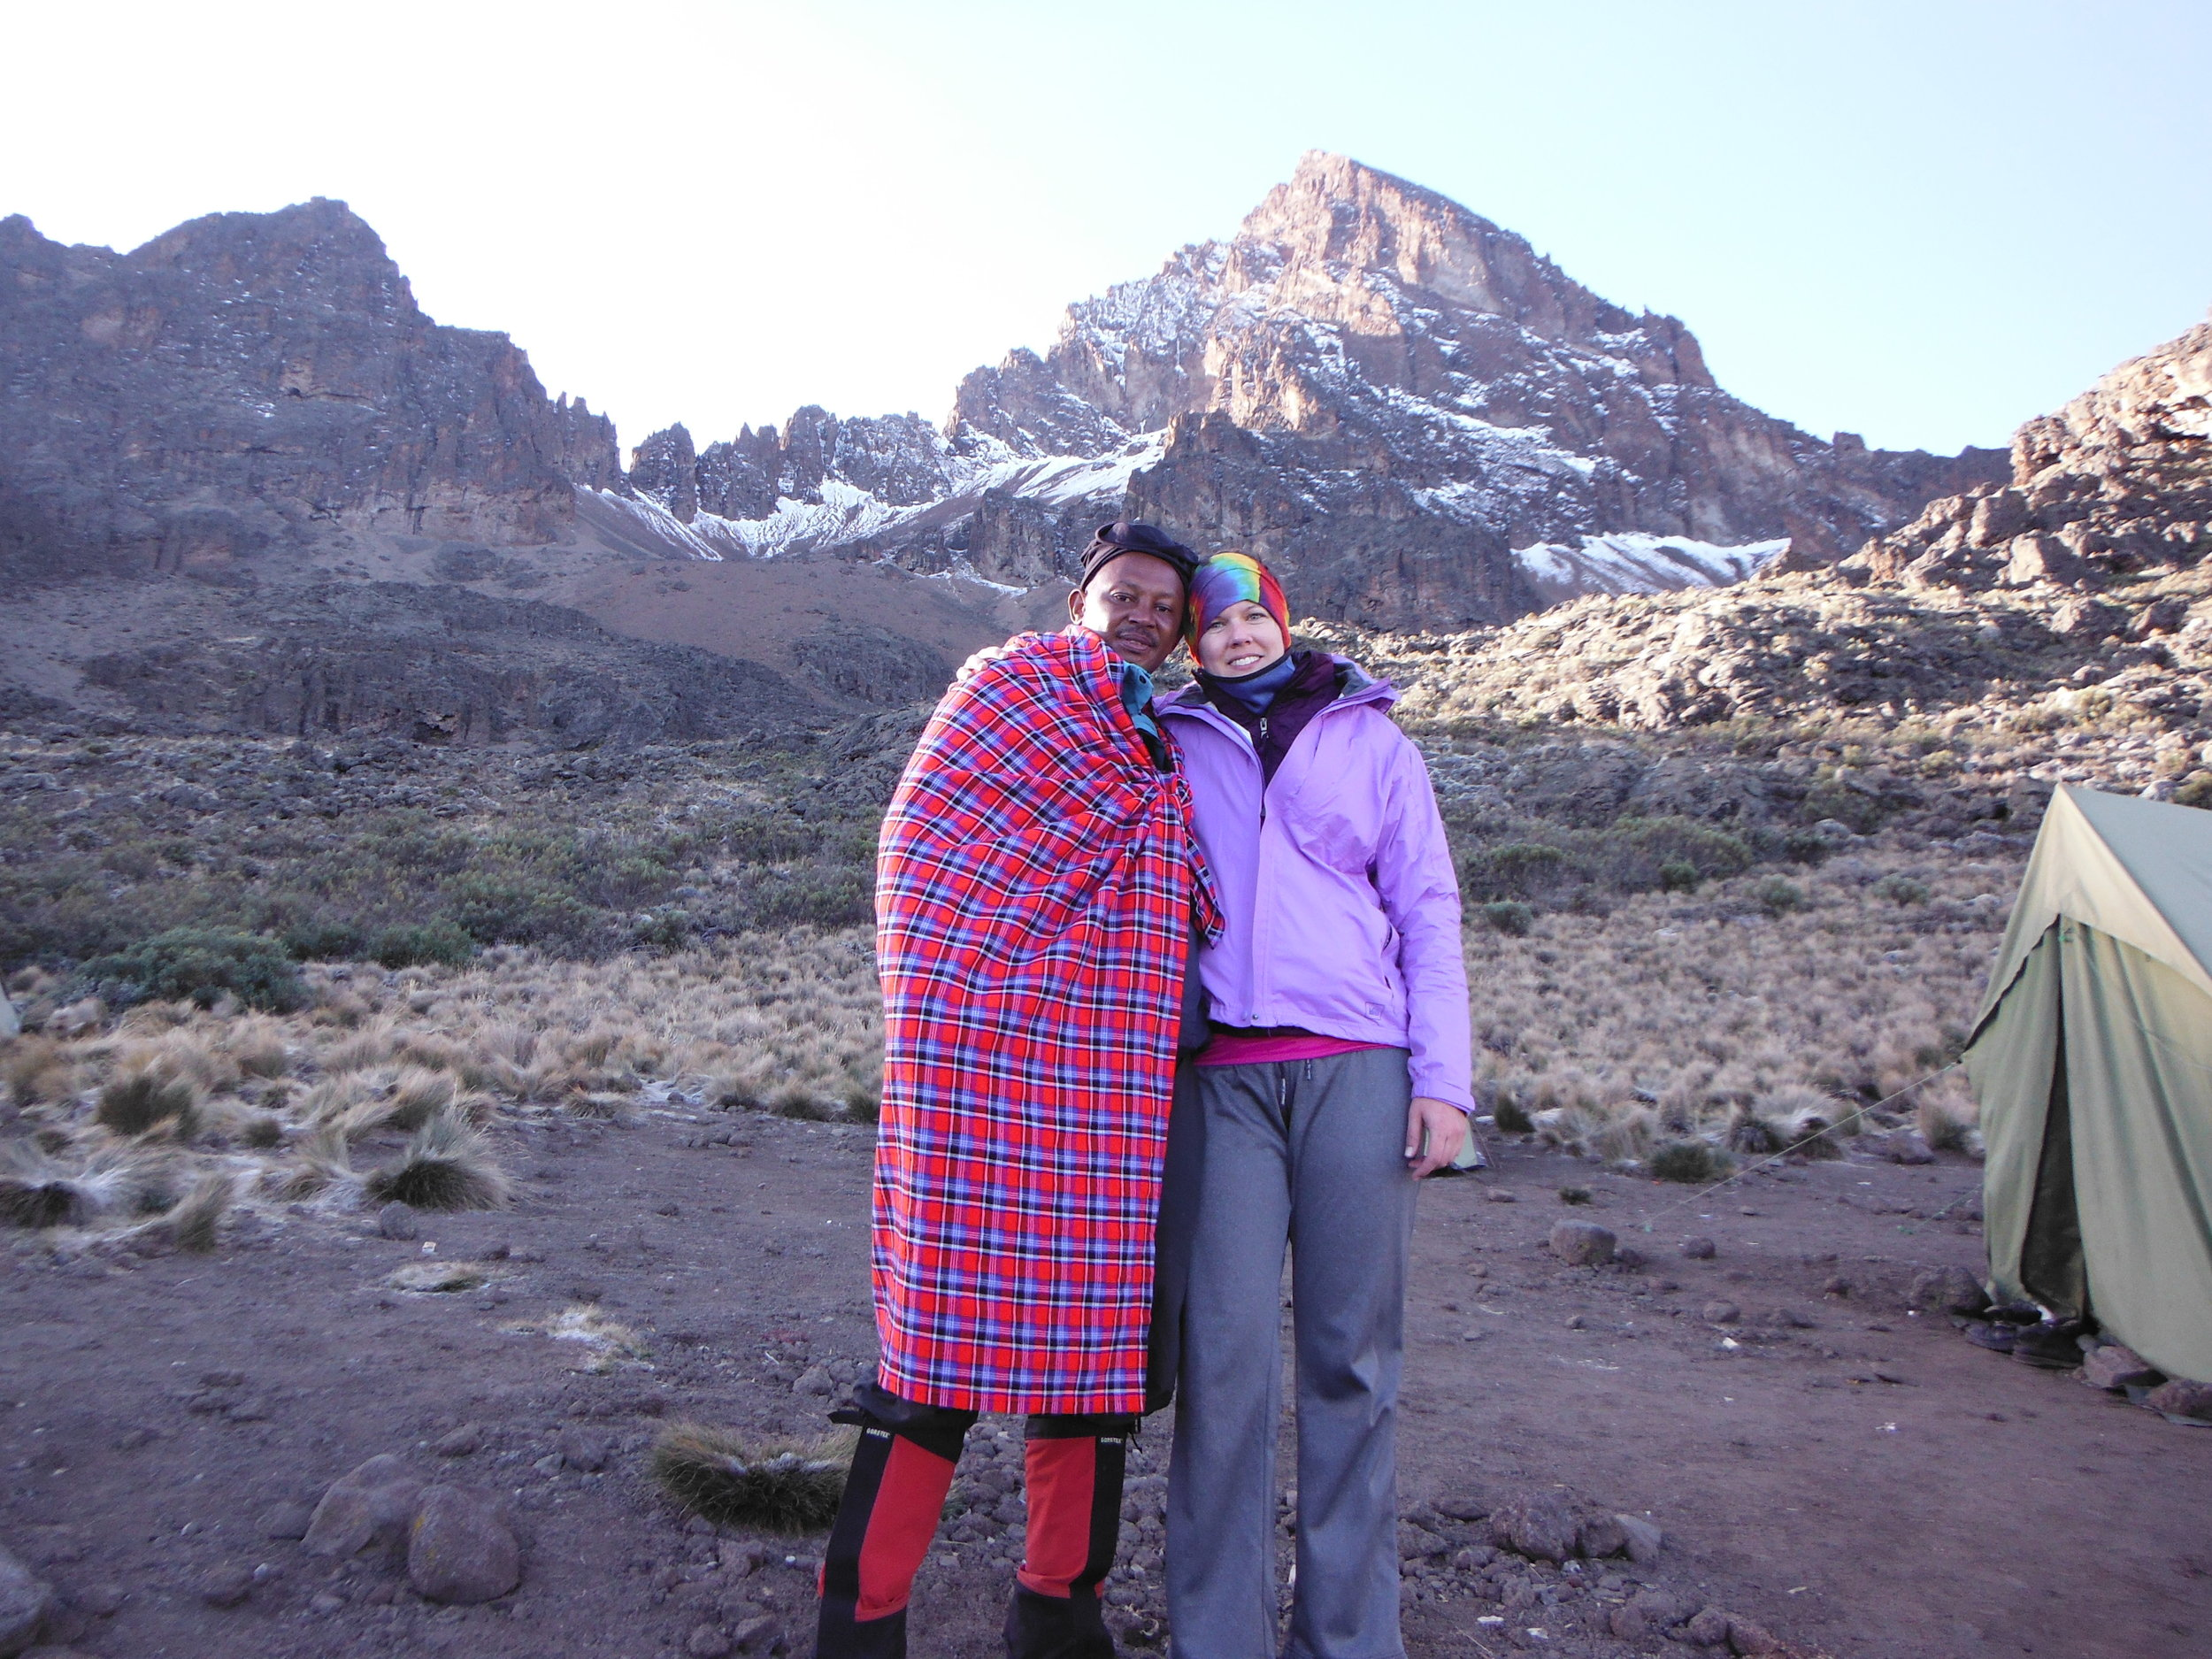 With Makeke. It was a cold morning ... though not as cold as summit night!(Mt Mawenzi in the background, which we scaled the afternoon prior in an acclimatization hike from camp)